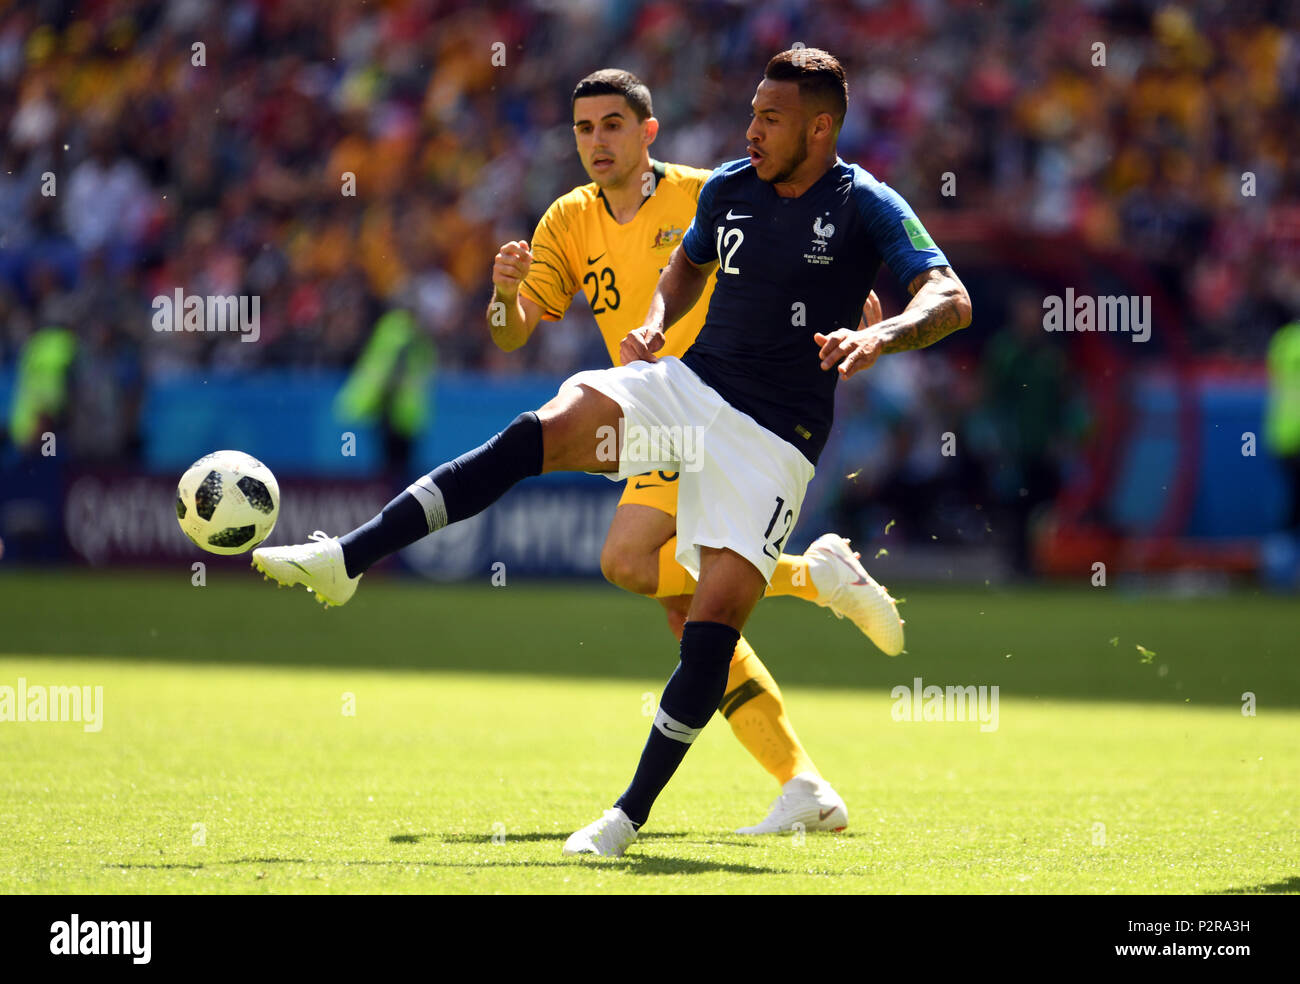 Kazan, Russia. 16th Jun, 2018. 16 June 2018, Russia, Kazan, Soccer, FIFA World Cup 2018, Matchday 1 of 3, France vs Australia in the Kazan Arena: Corentin Tolisso (R) from France and Tom Rogic from Australia fight for the ball. Photo: Andreas Gebert/dpa Credit: dpa picture alliance/Alamy Live News - Stock Image